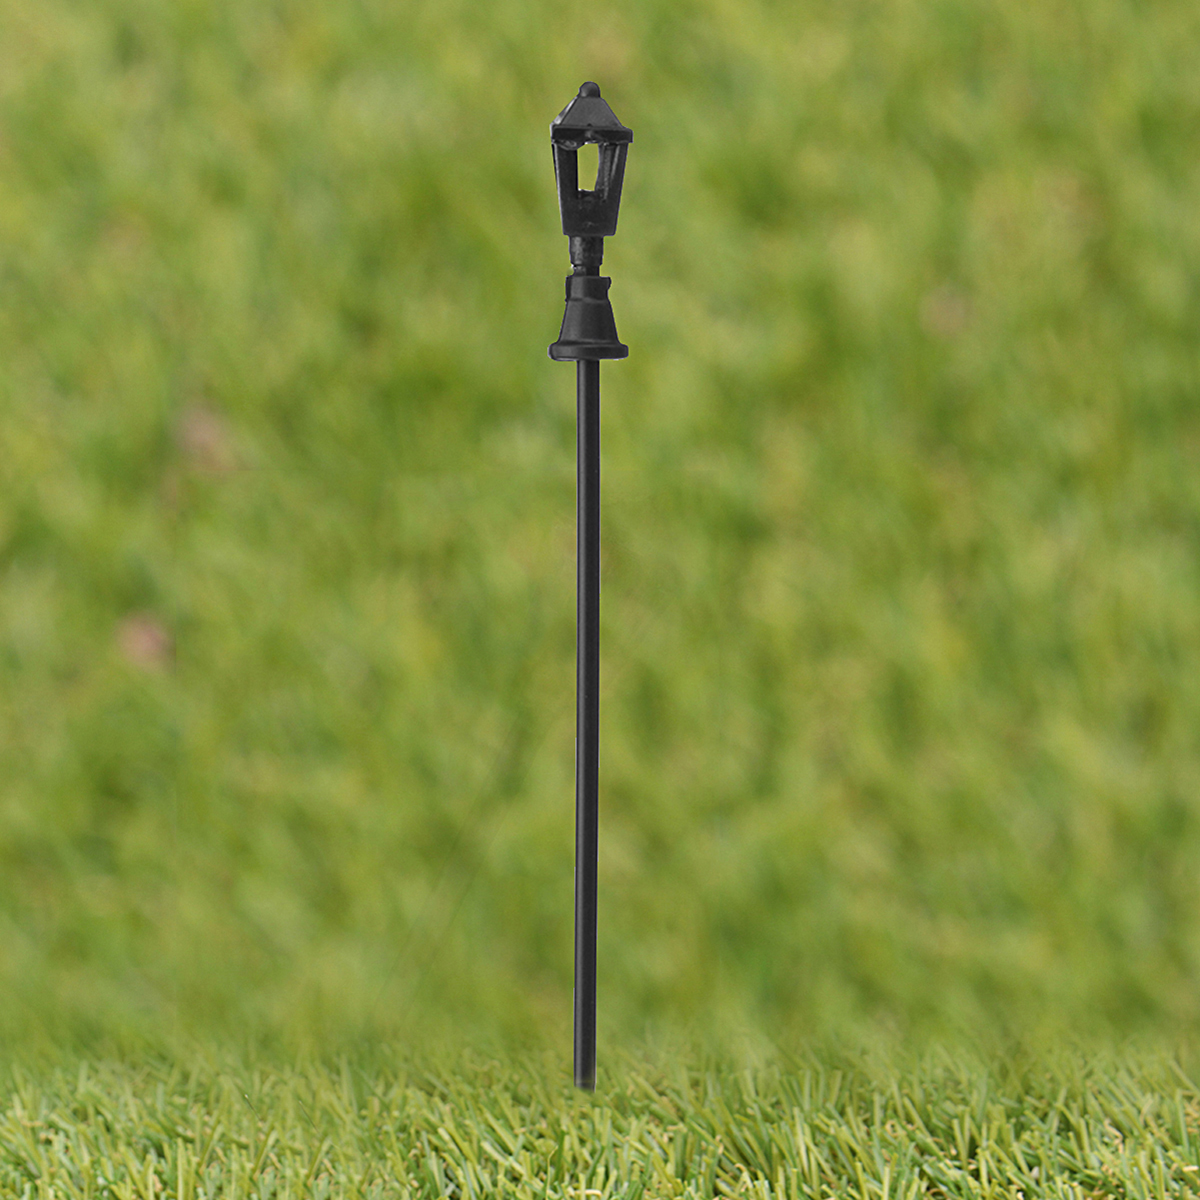 Grass Street Light Lamp Model Architectural Garden Street Railway Lamppost